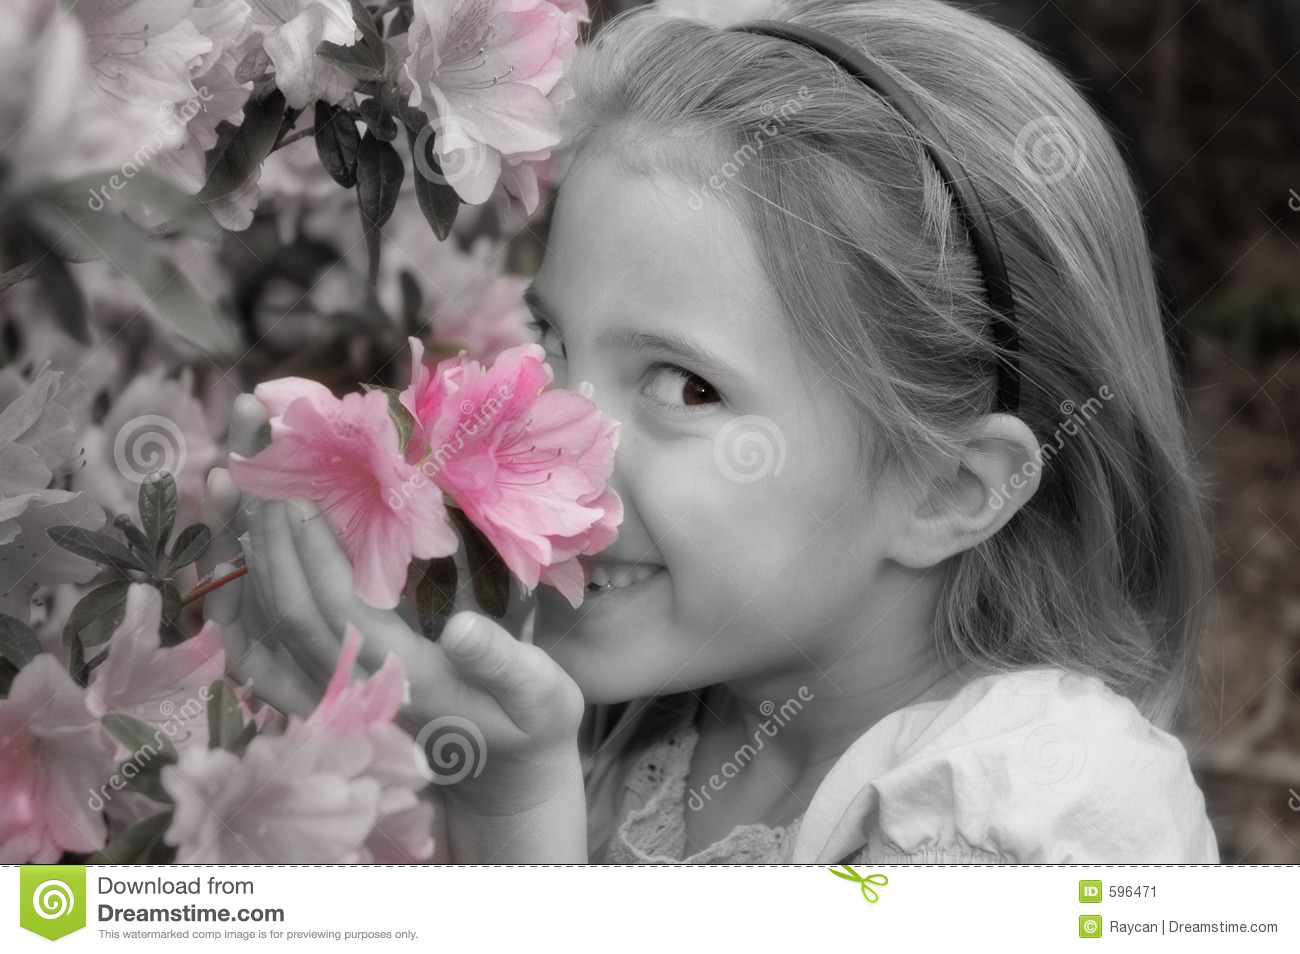 Stop to smell the flowers